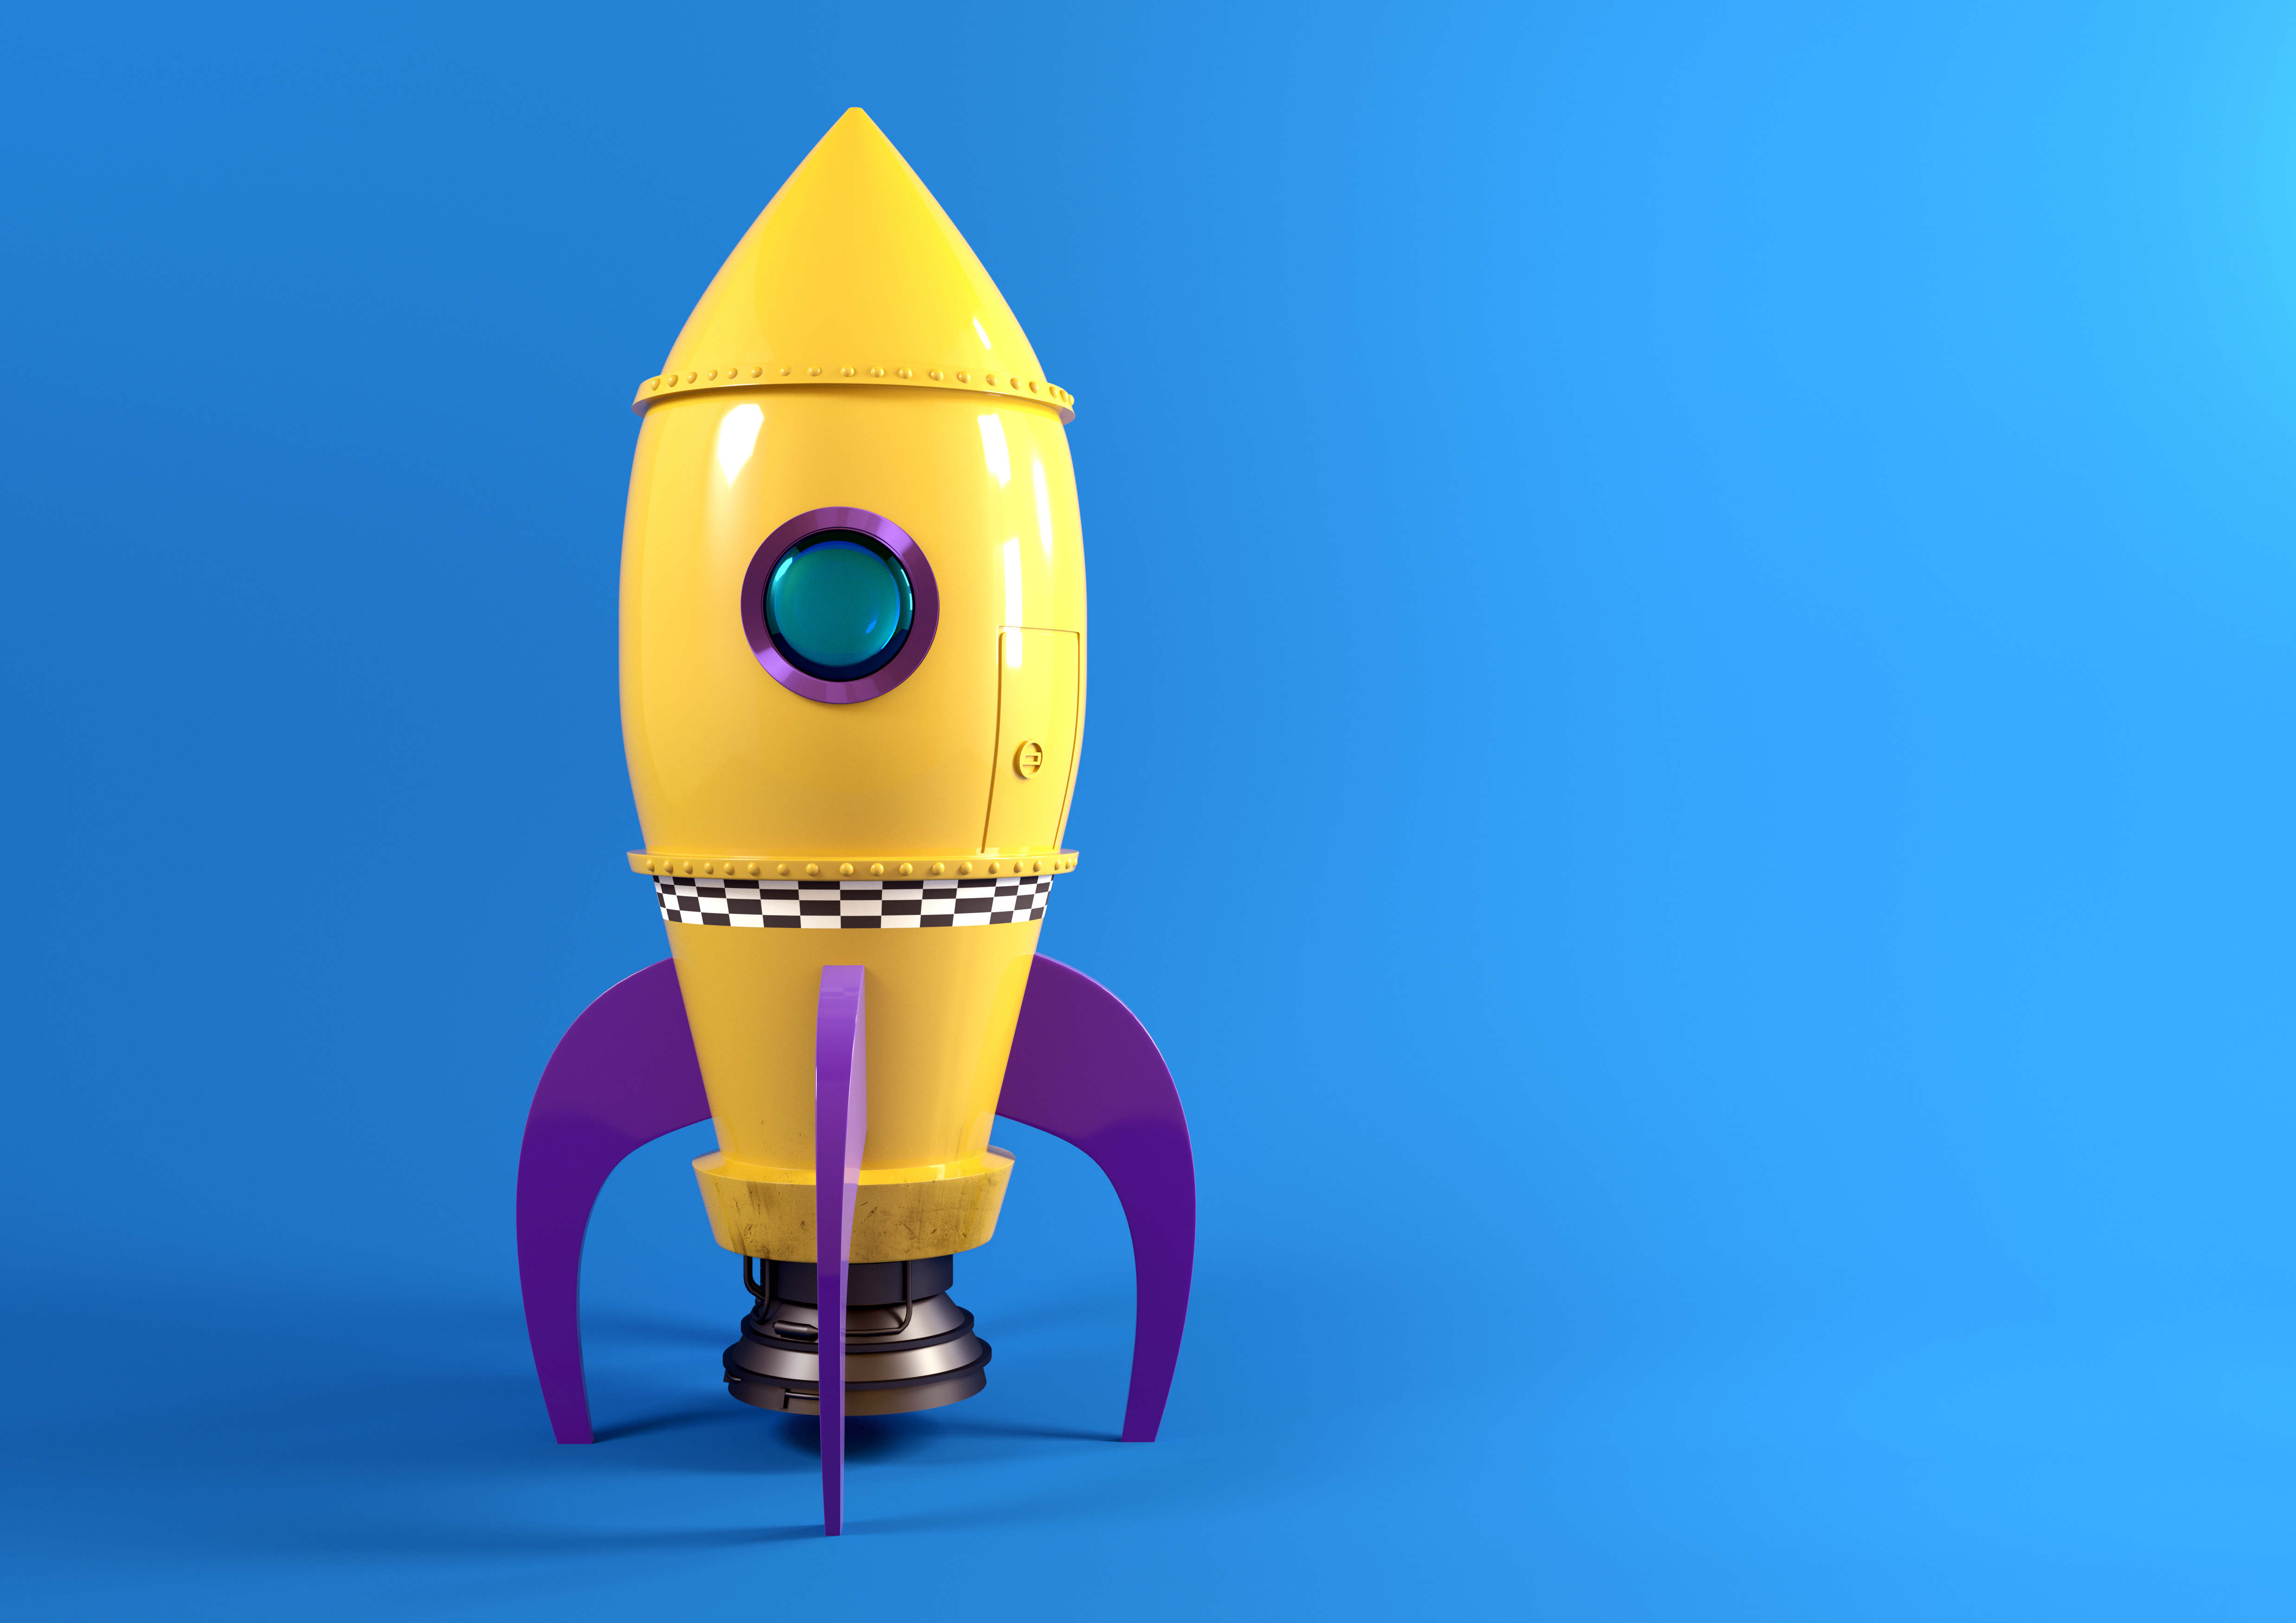 Yellow toy rocketship on blue backdrop